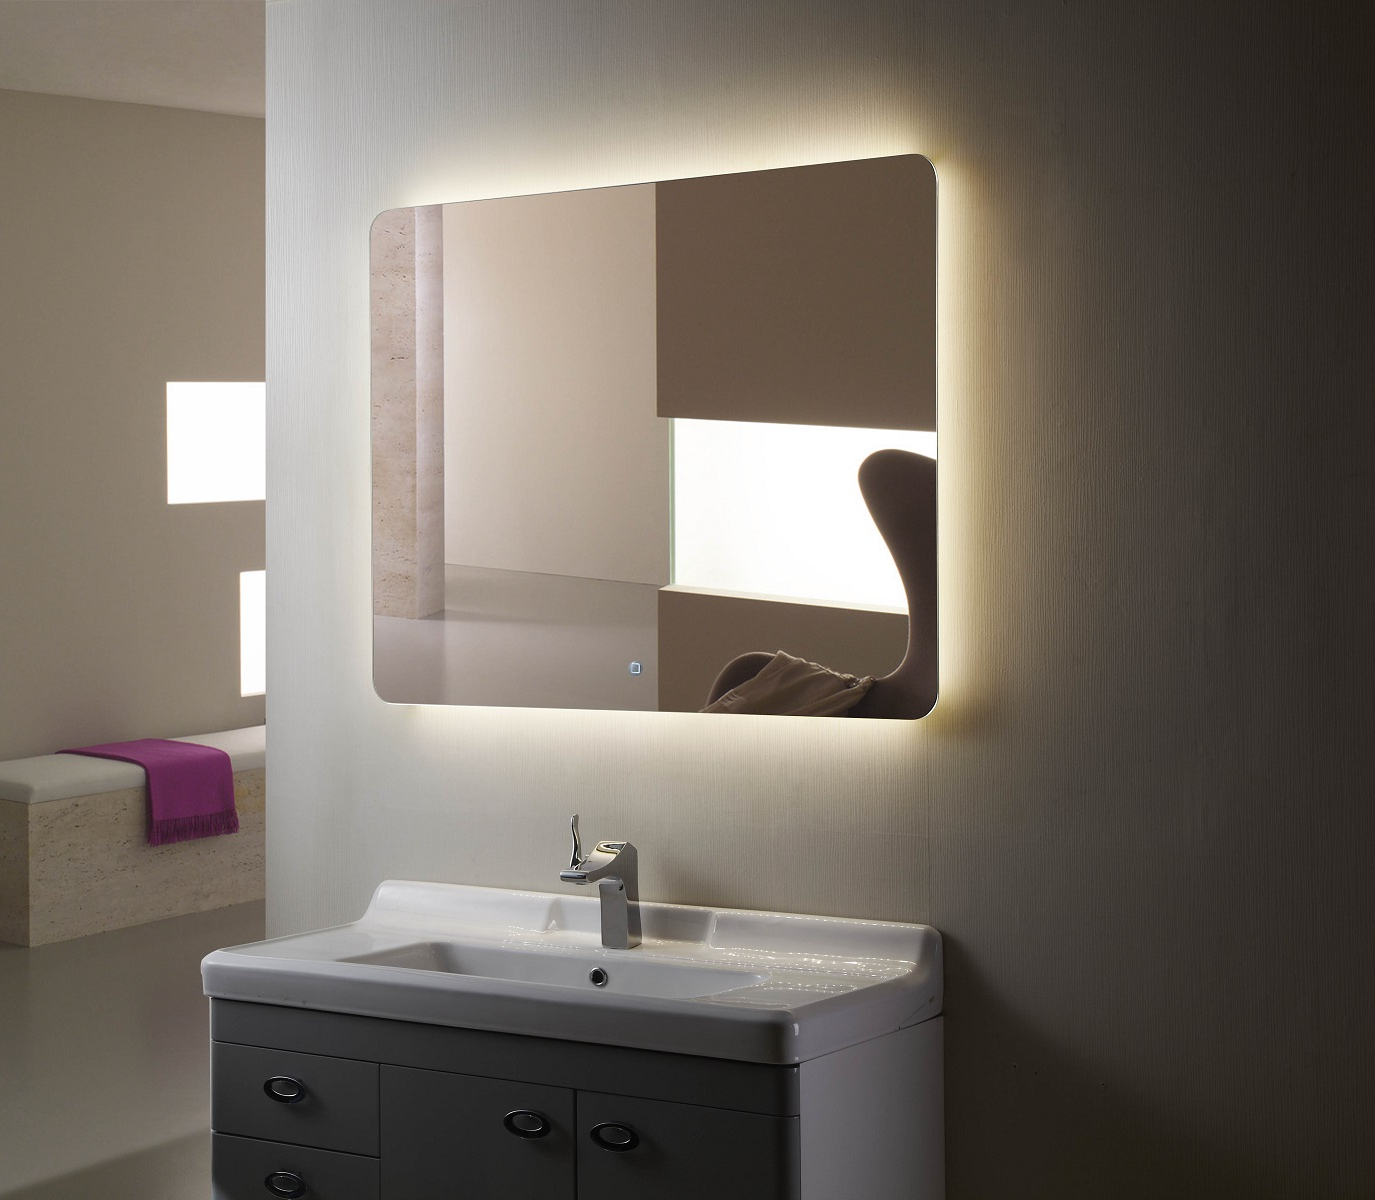 Backlit Mirror Led Bathroom Mirror Montana Iii In Most Recent Backlit Bathroom Wall Mirrors (View 7 of 20)